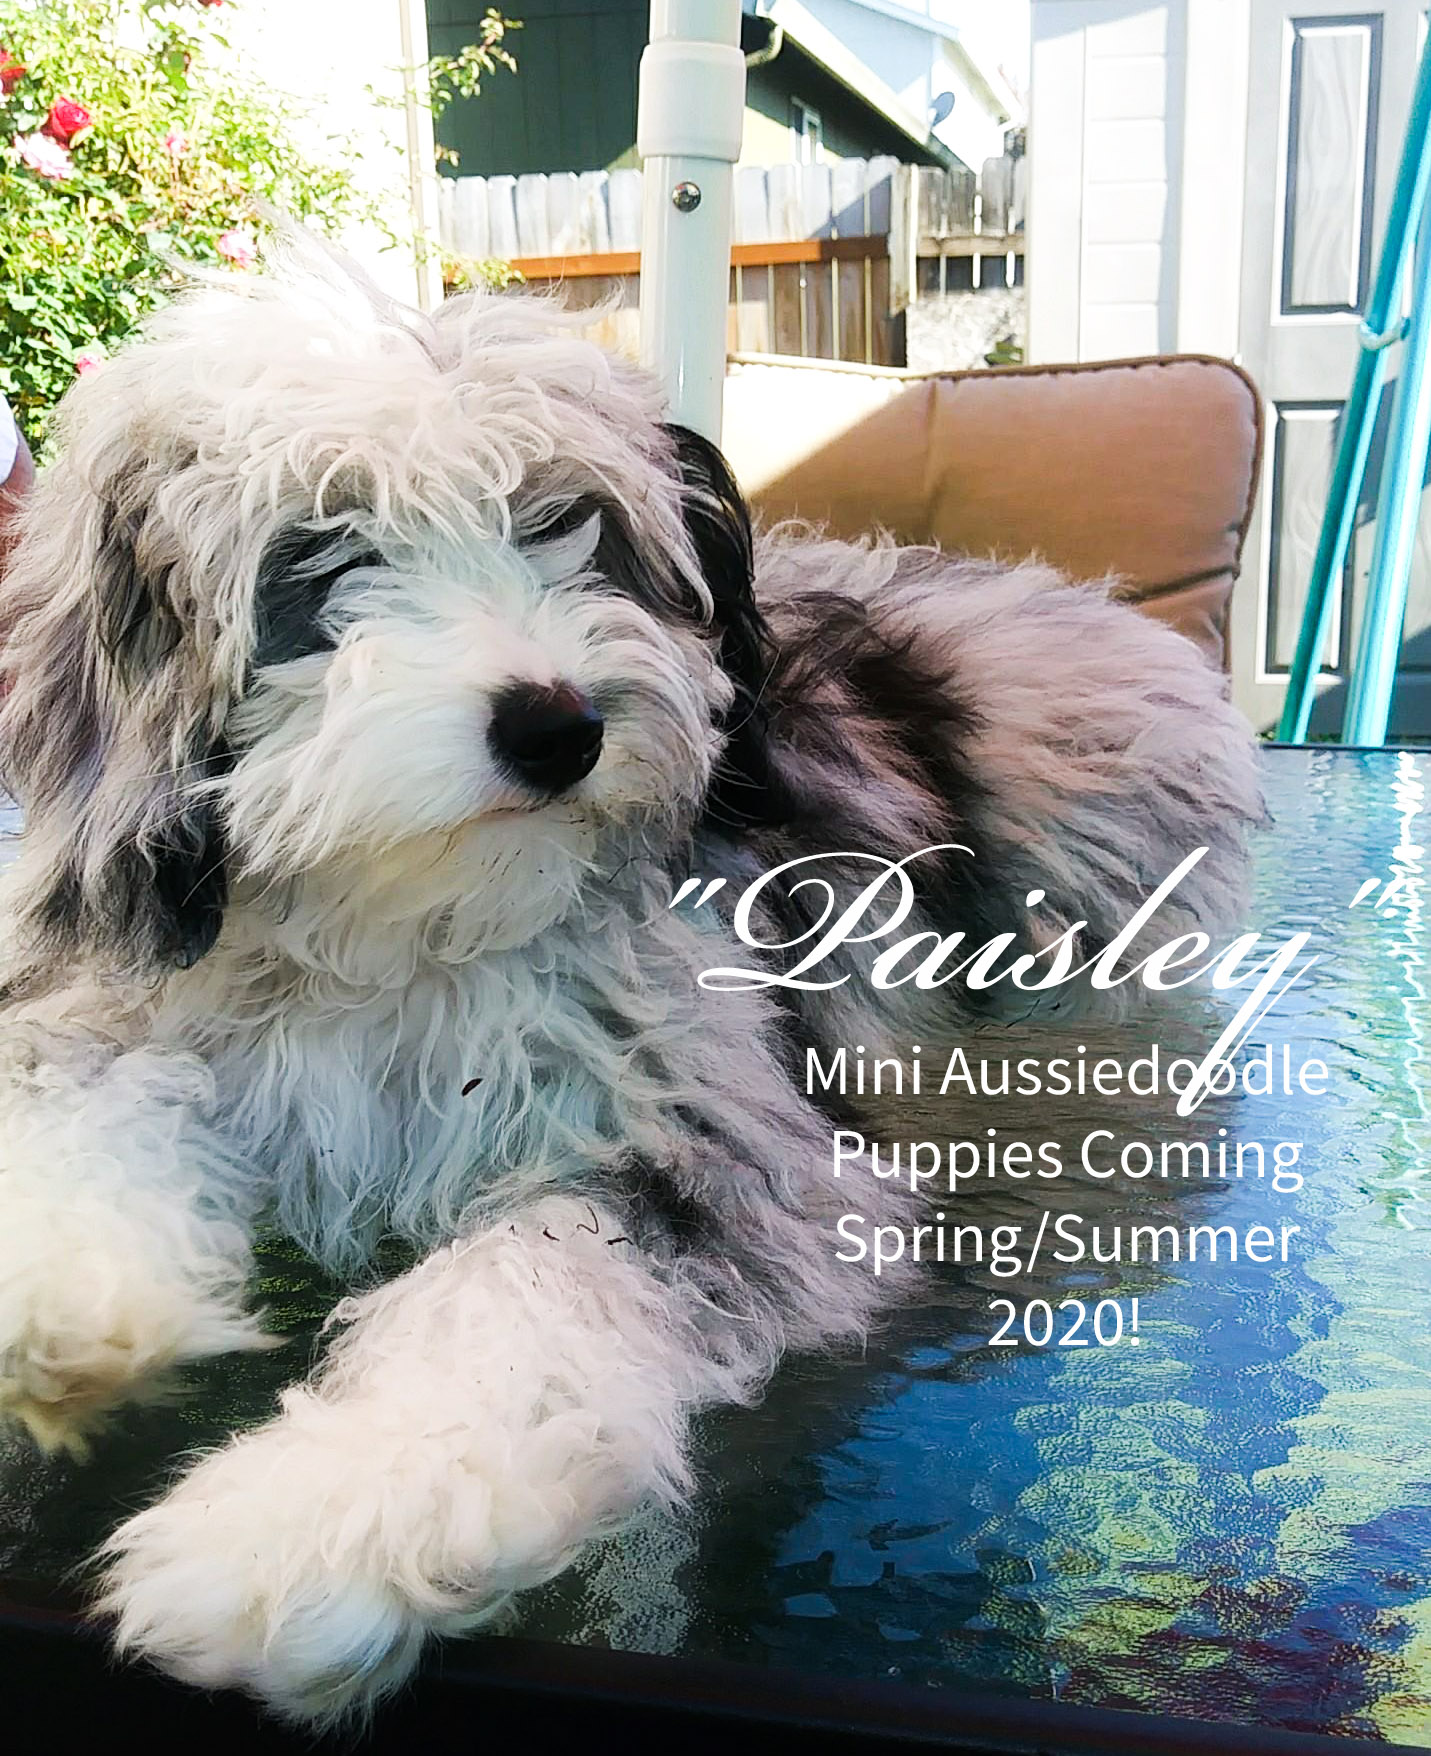 MINI AUSSIEDOODLE PAISLEY BLUE MERLE LITTERS COMING SPRING/SUMMER 2020